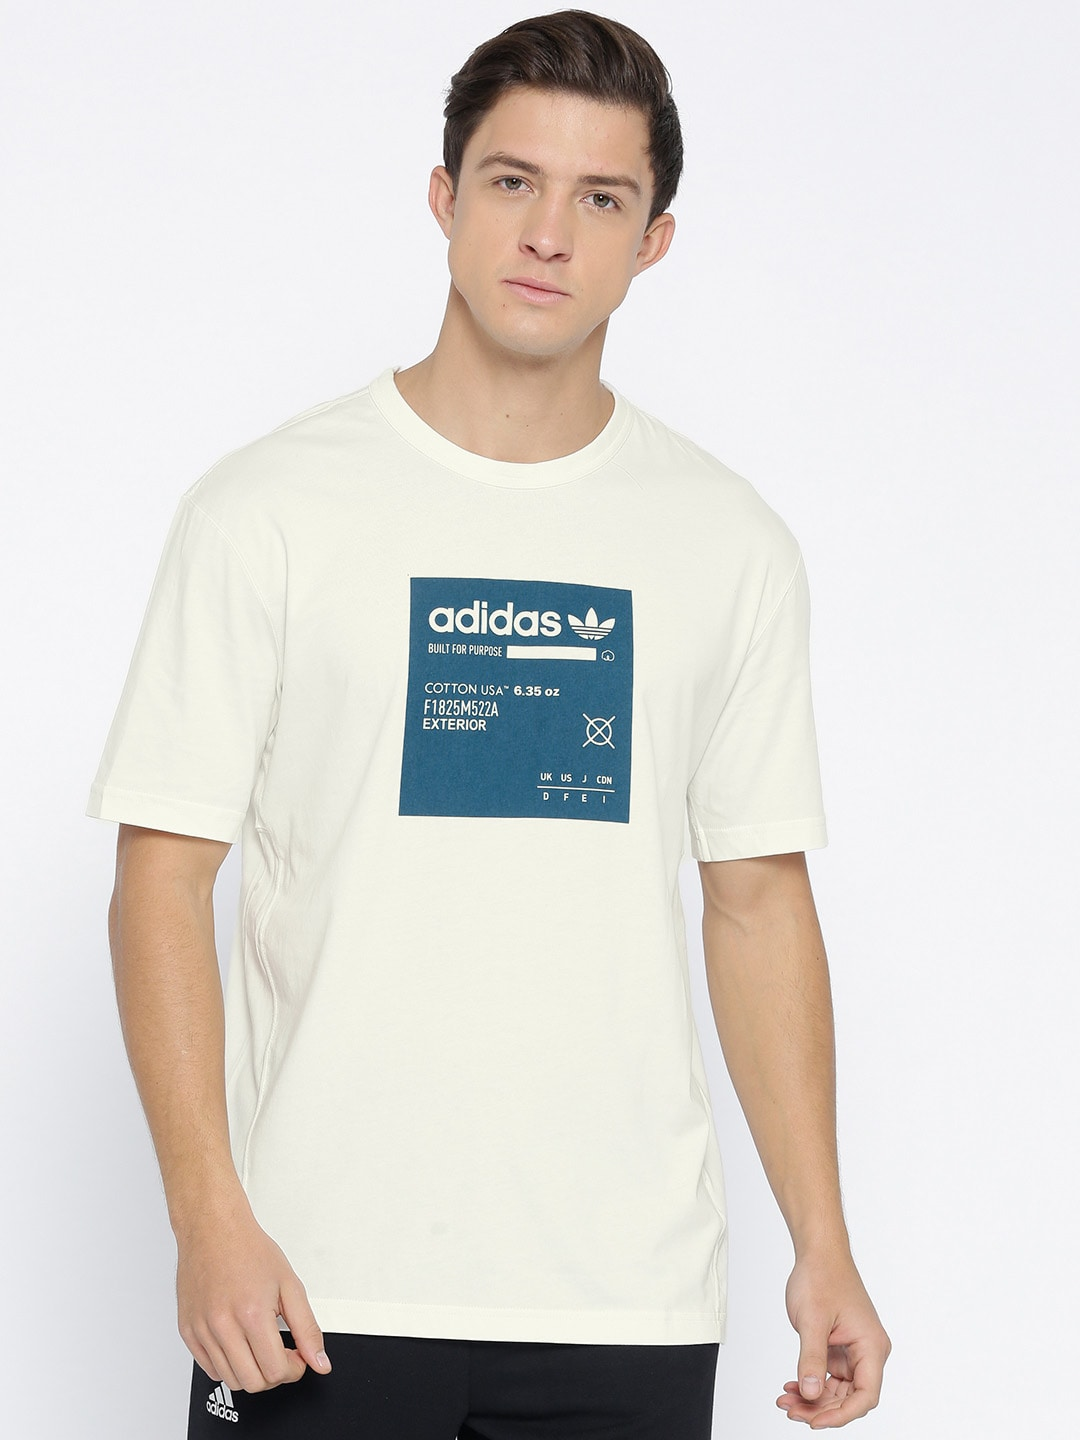 d48c3e1d66eed adidas - Exclusive adidas Online Store in India at Myntra